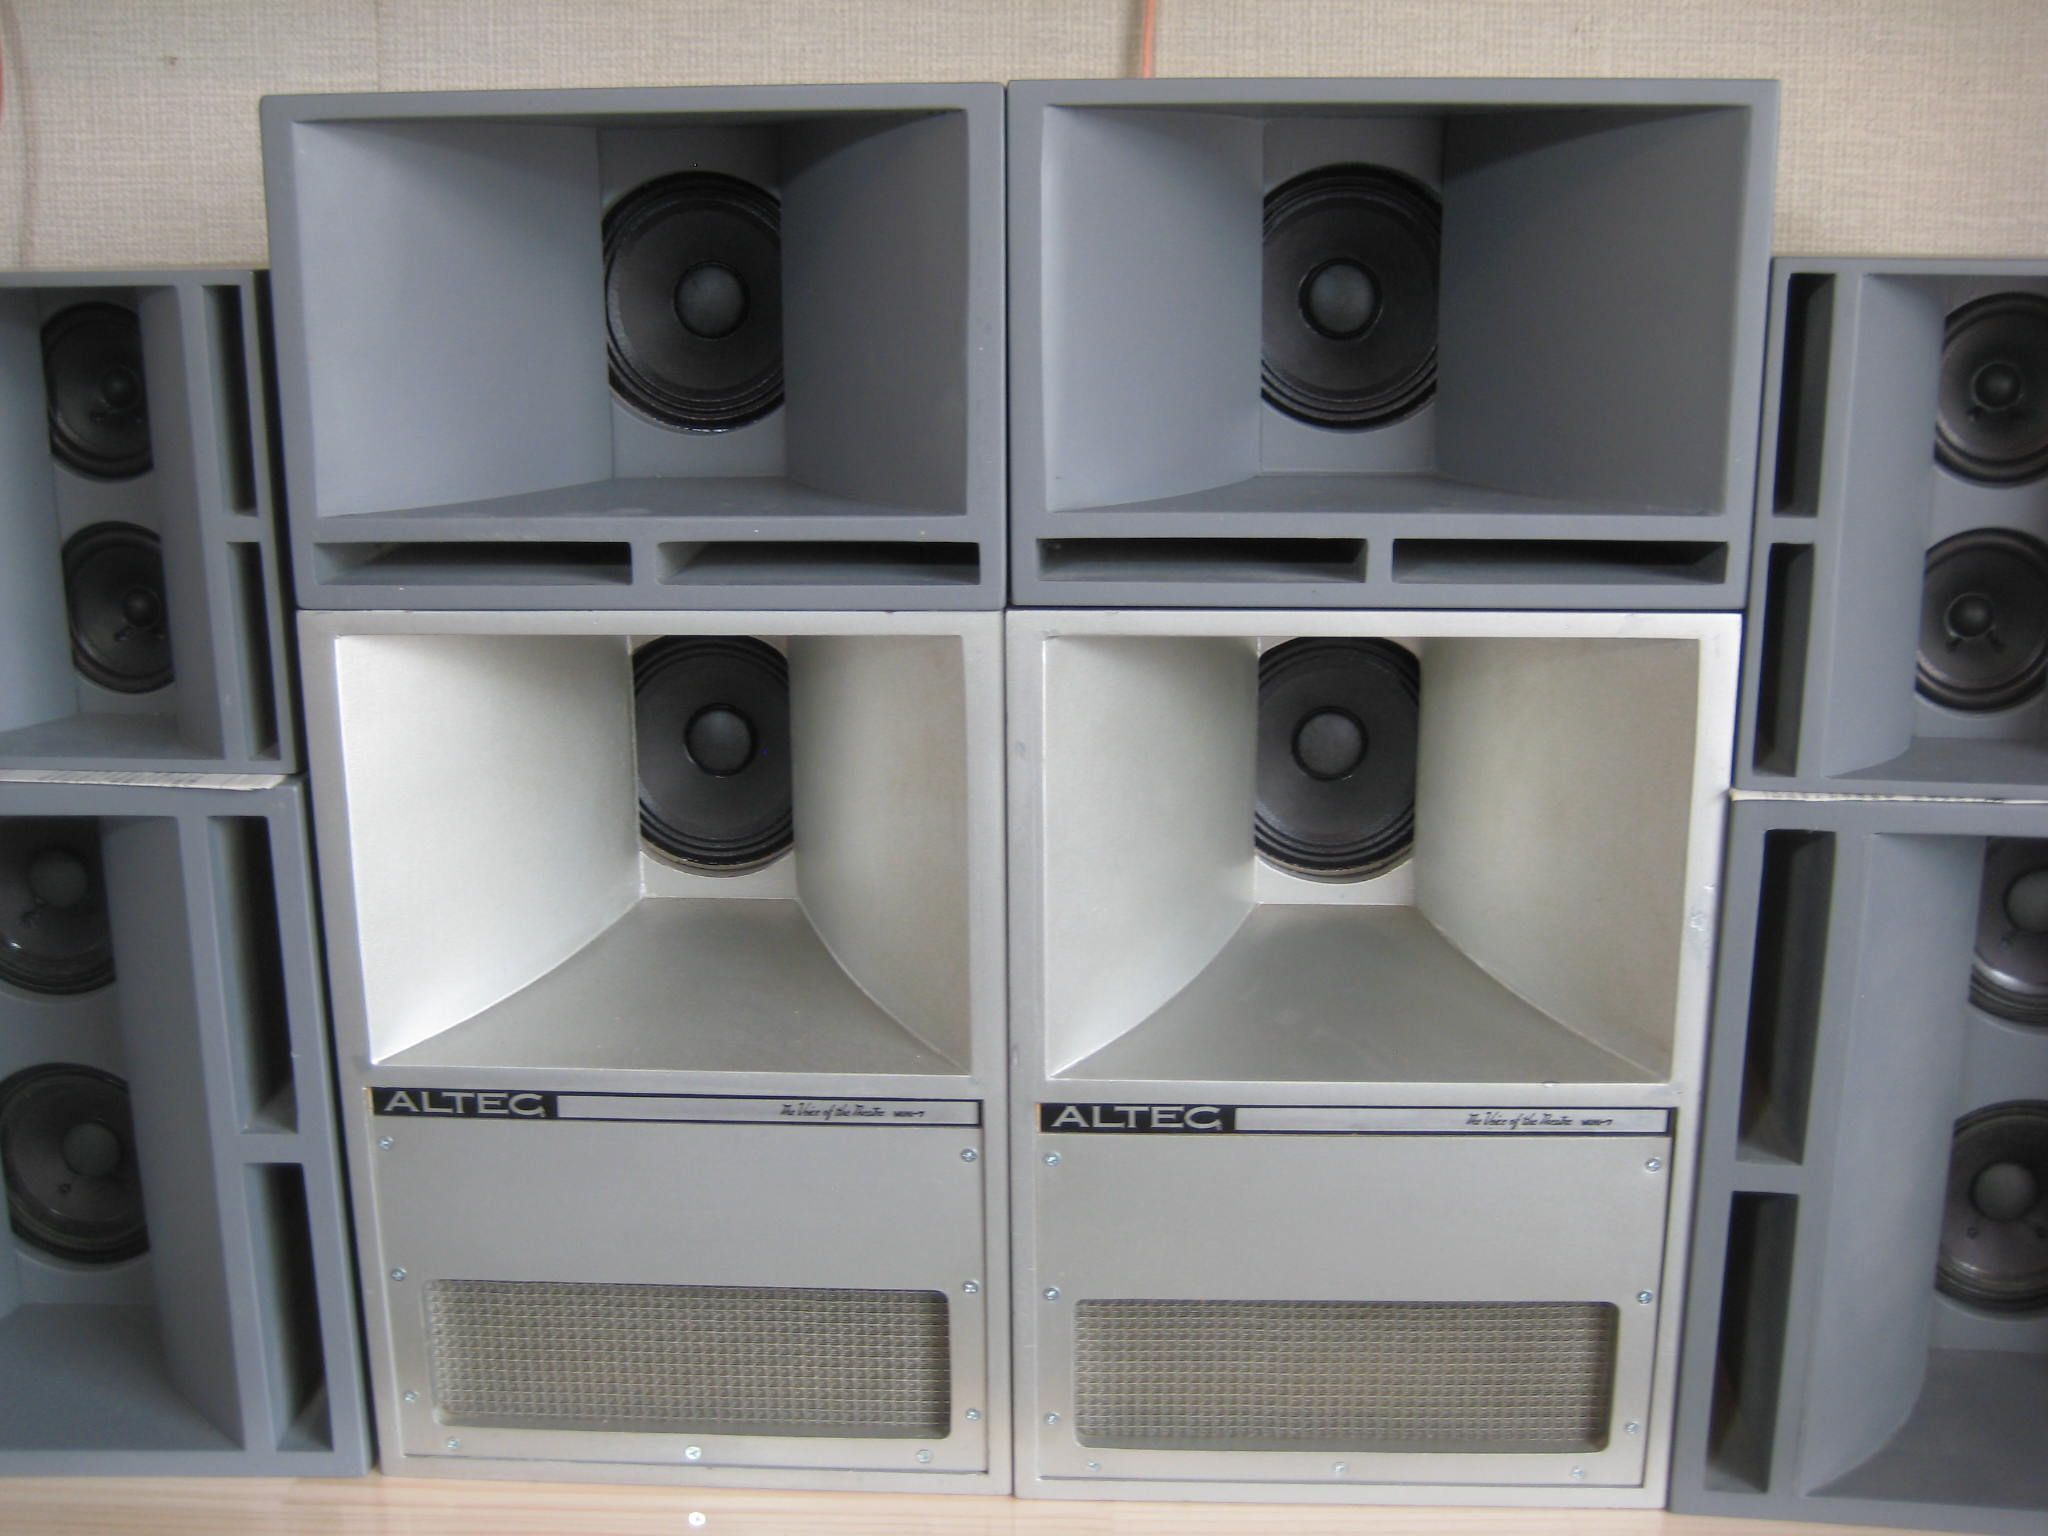 hight resolution of  altec the voice of the theatre cinema theater speakers and sound on